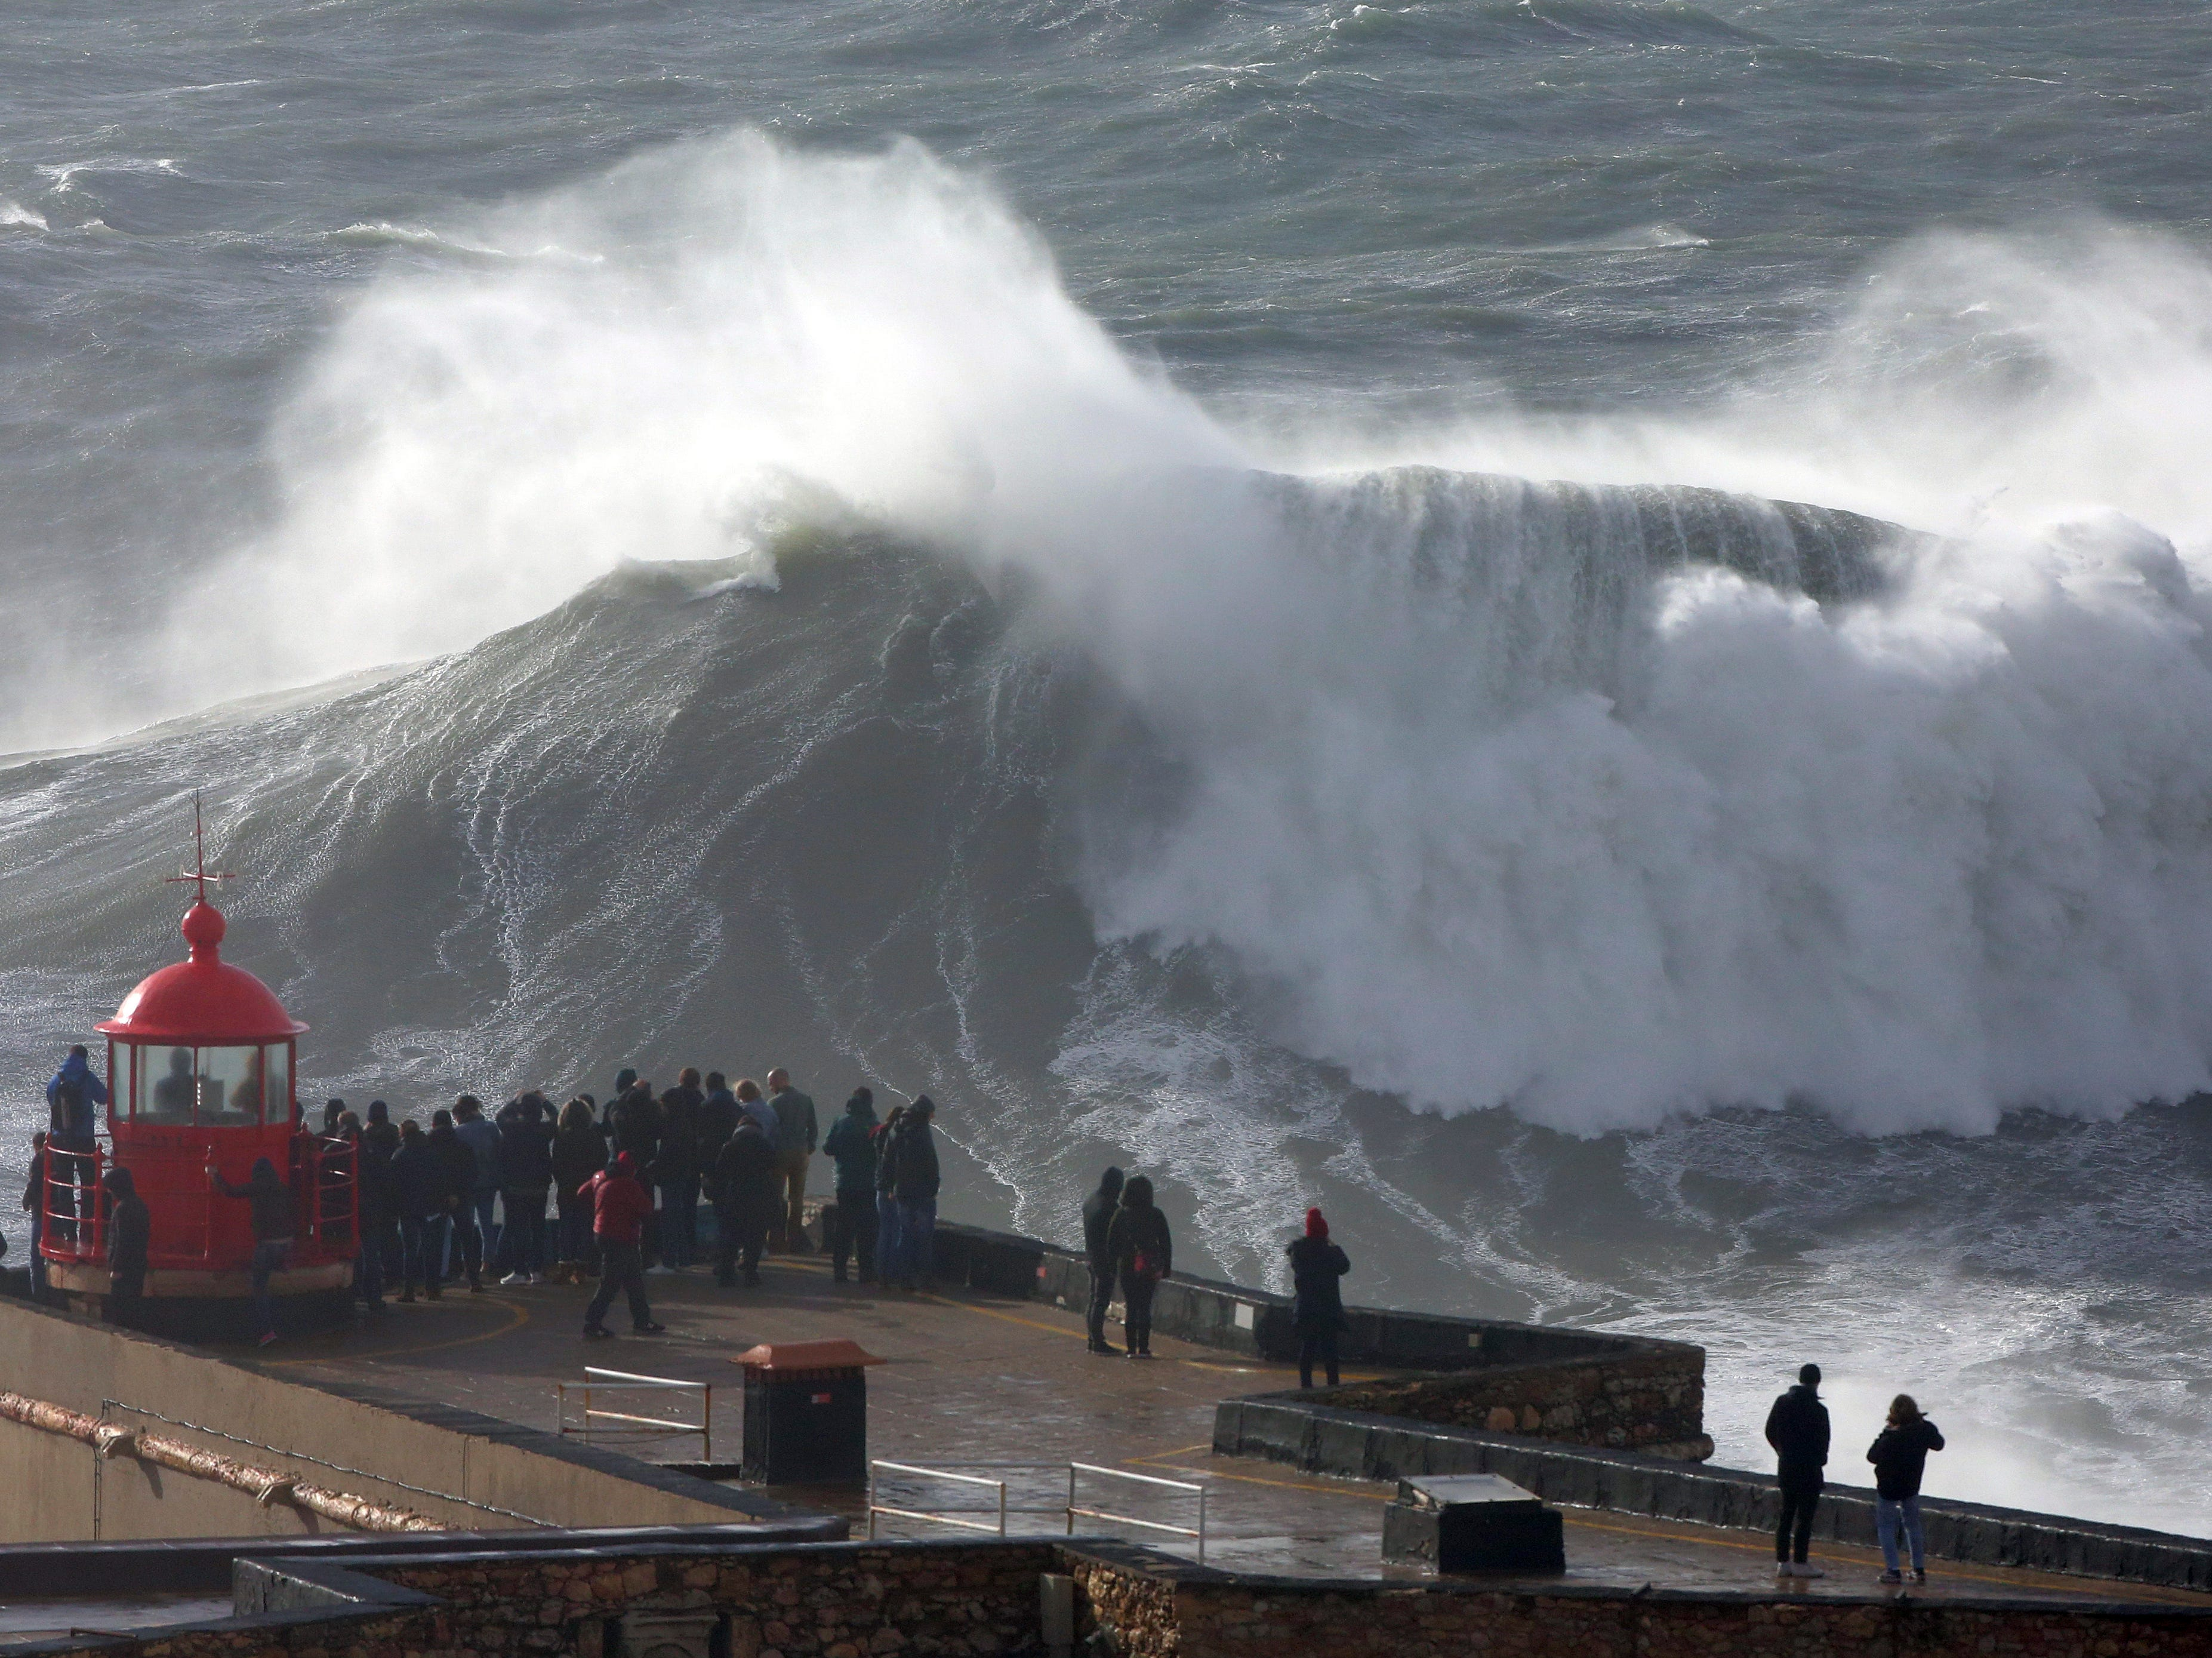 People gather on the roof of the Nazare lighthouse to watch big waves crashing at the Praia do Norte, or North Beach, in Nazare, in Portugal's west coast, Friday, Feb. 1, 2019. Waves over 10 meters high and strong winds were forecast to hit the Portuguese coast on Friday.